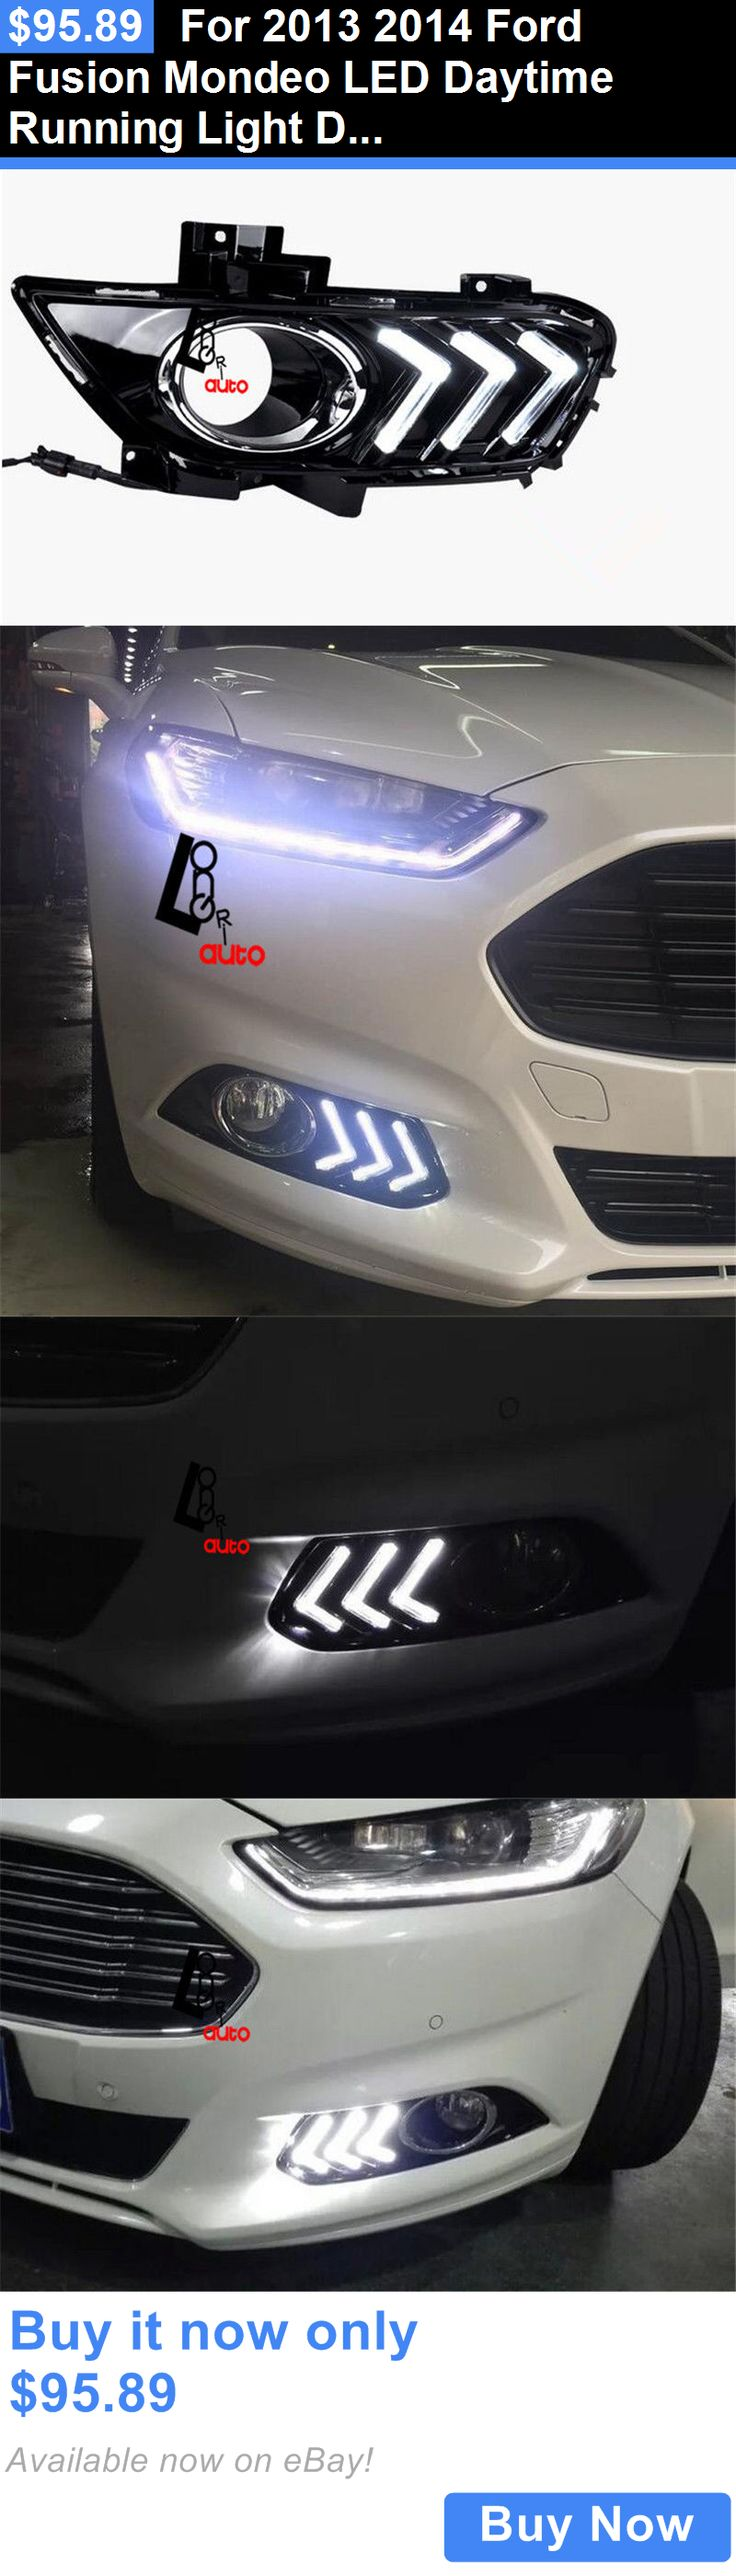 Motors parts and accessories for 2013 2014 ford fusion mondeo led daytime running light drl